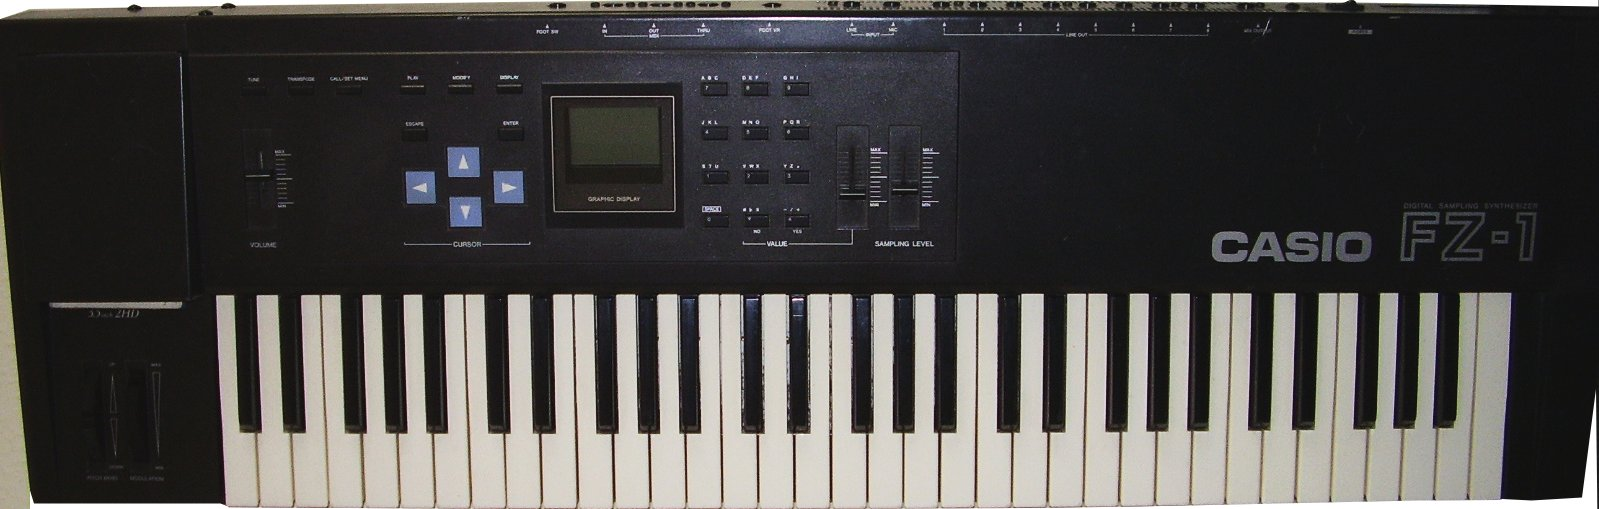 Casio FZ1, Fz10m, Fz20m synthesizer